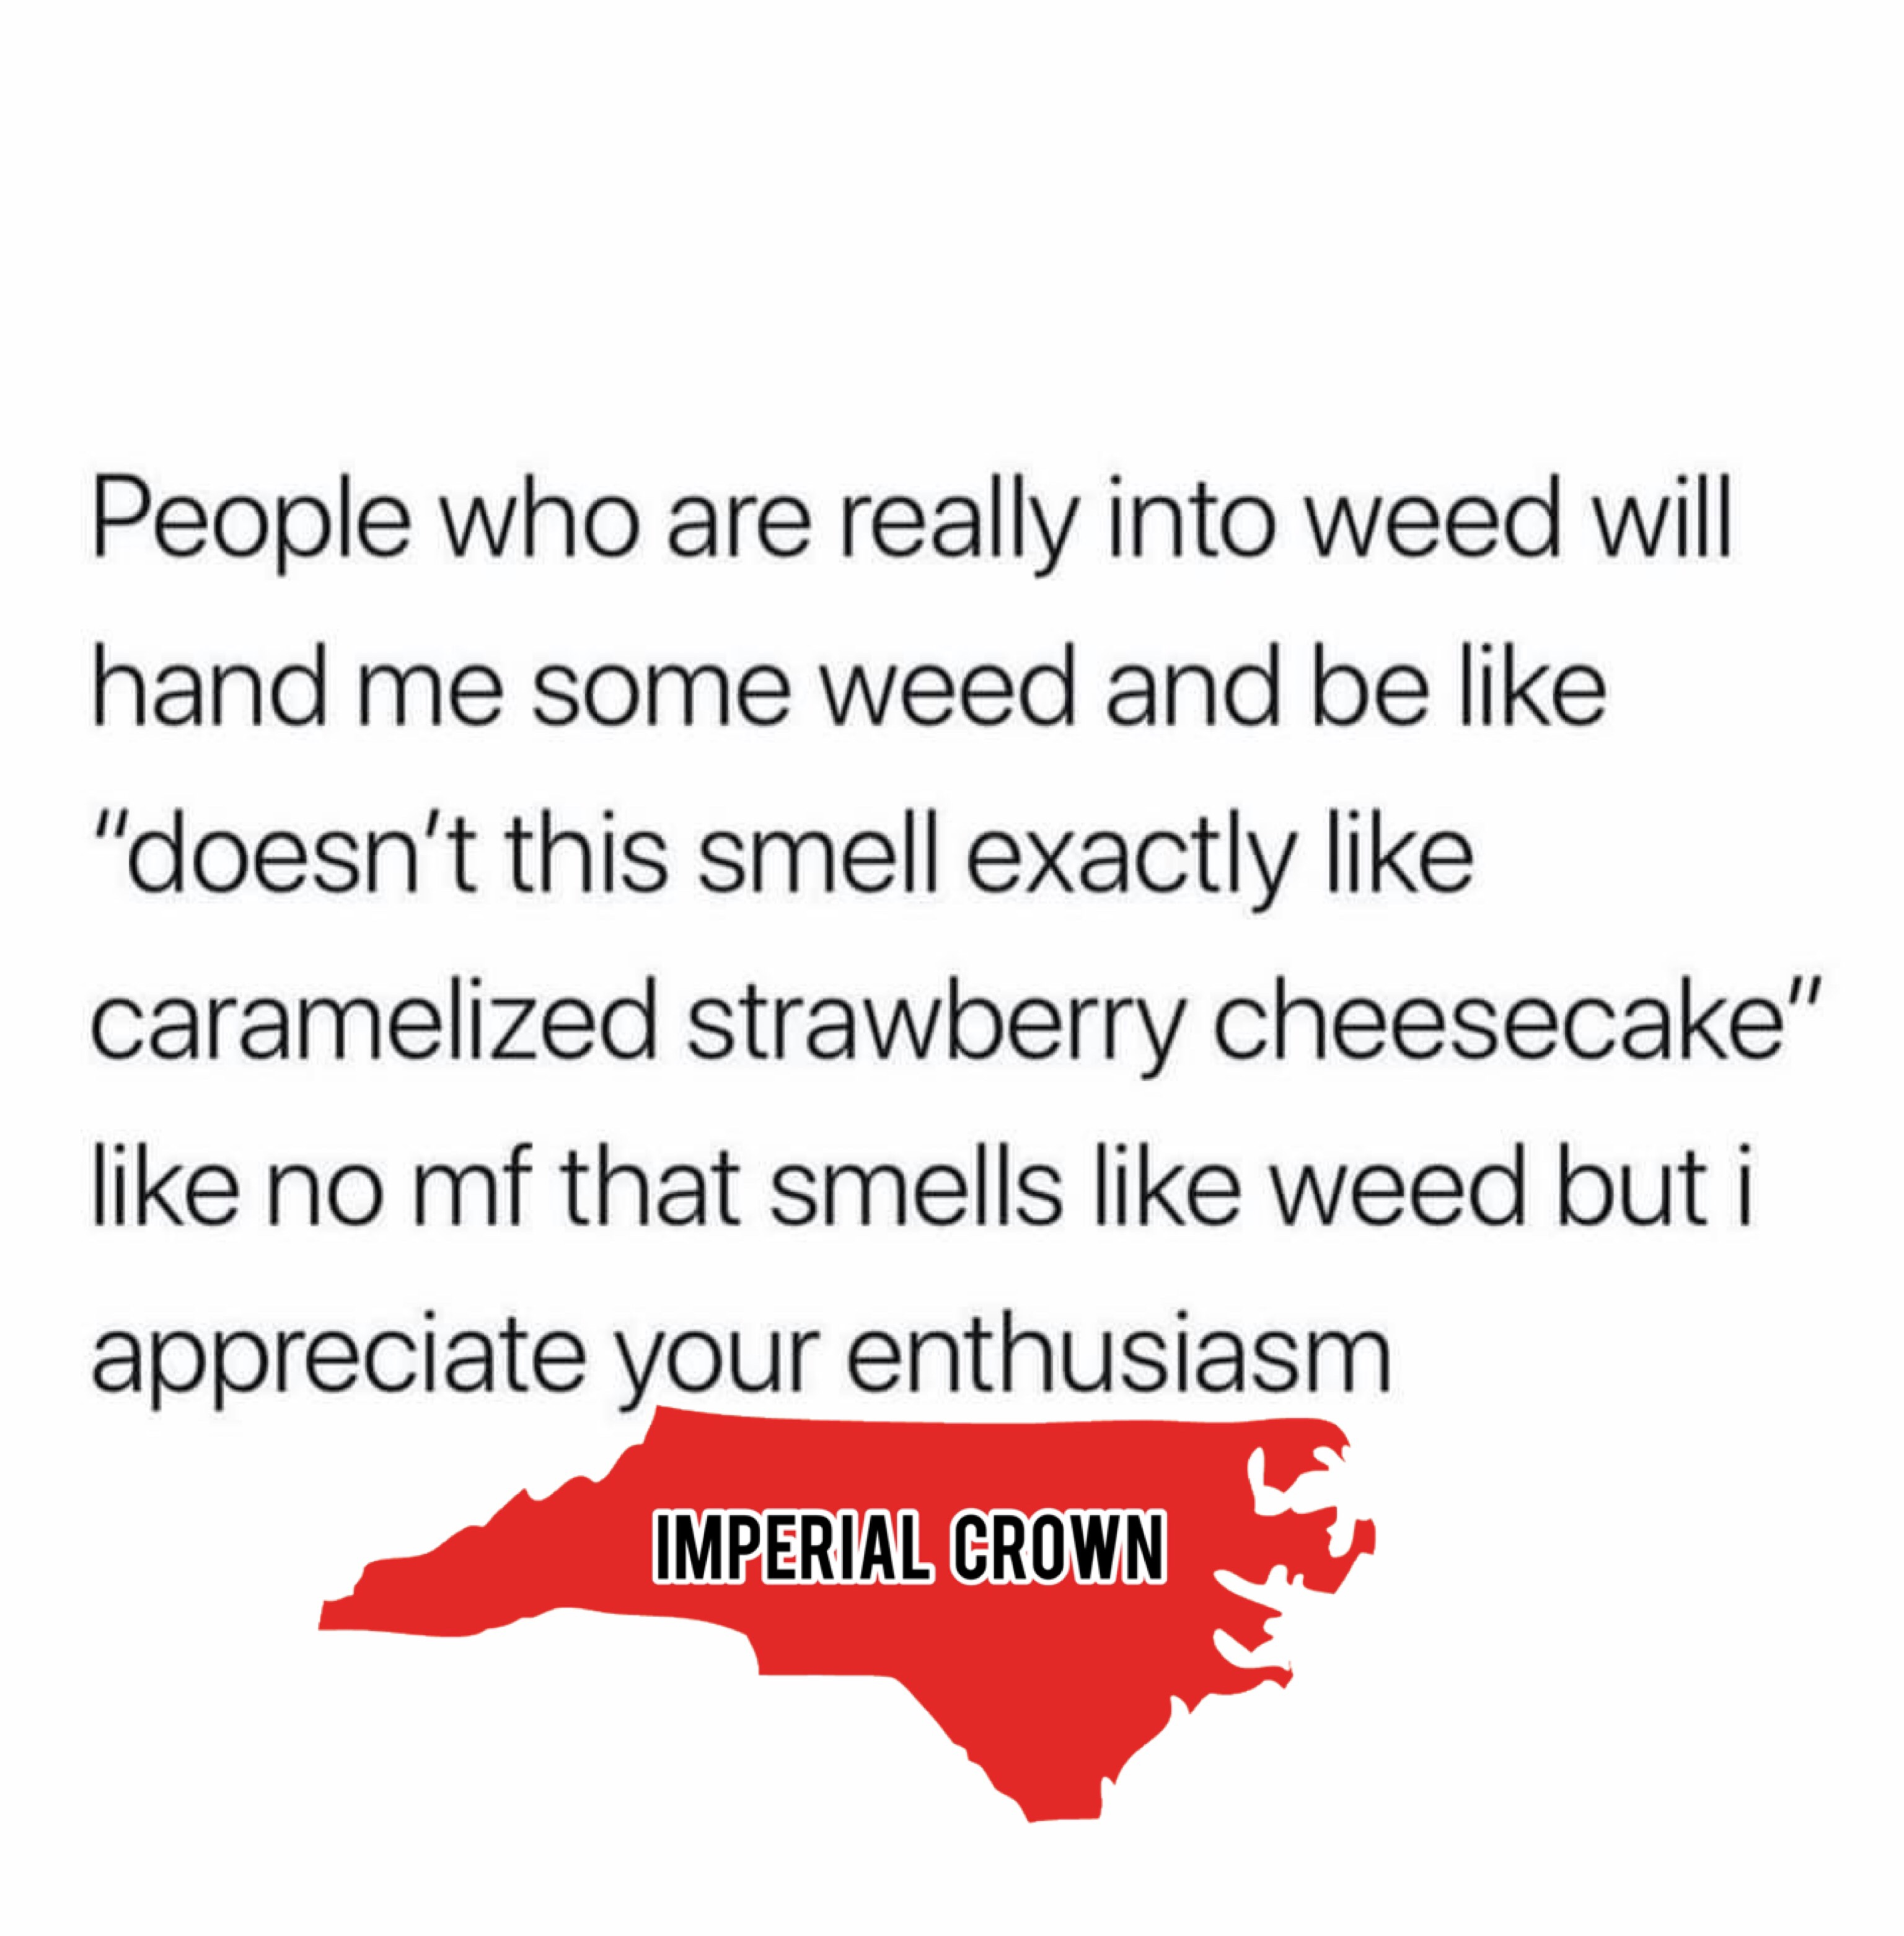 People who are rally into weed will hand some weed and….